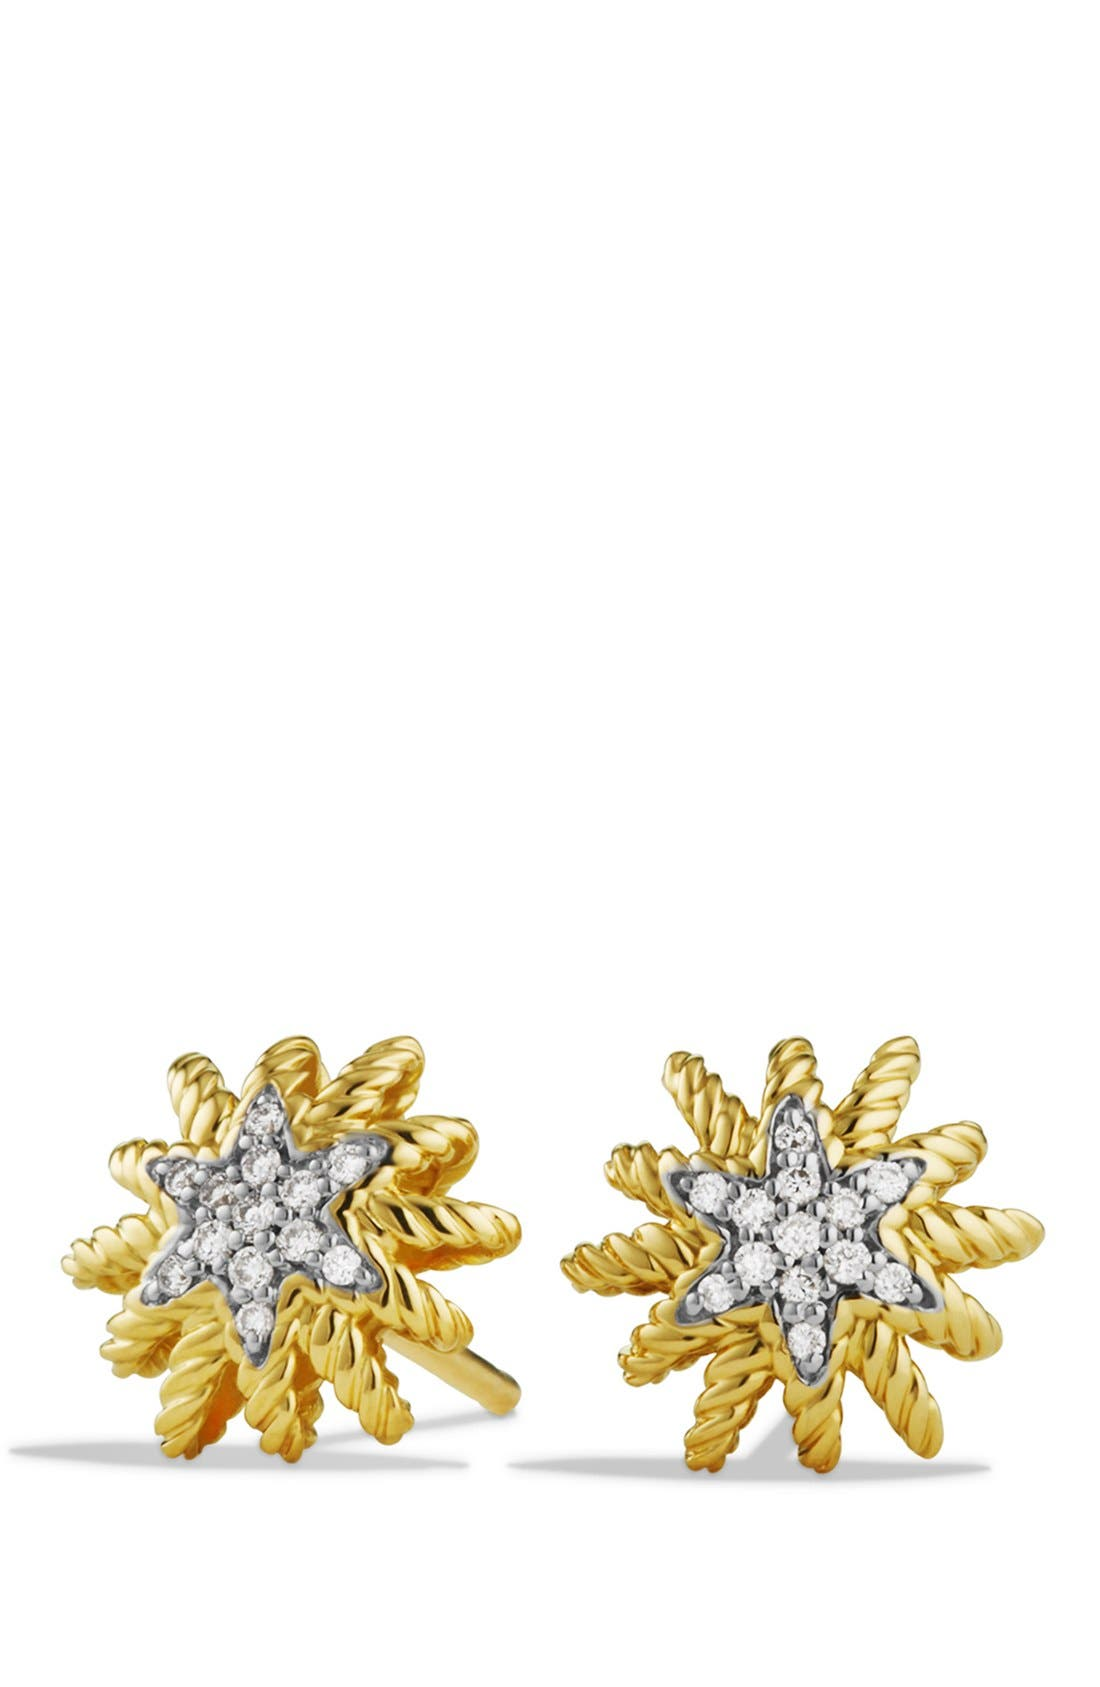 'Starburst' Mini Earrings with Diamonds in Gold,                         Main,                         color, YELLOW GOLD